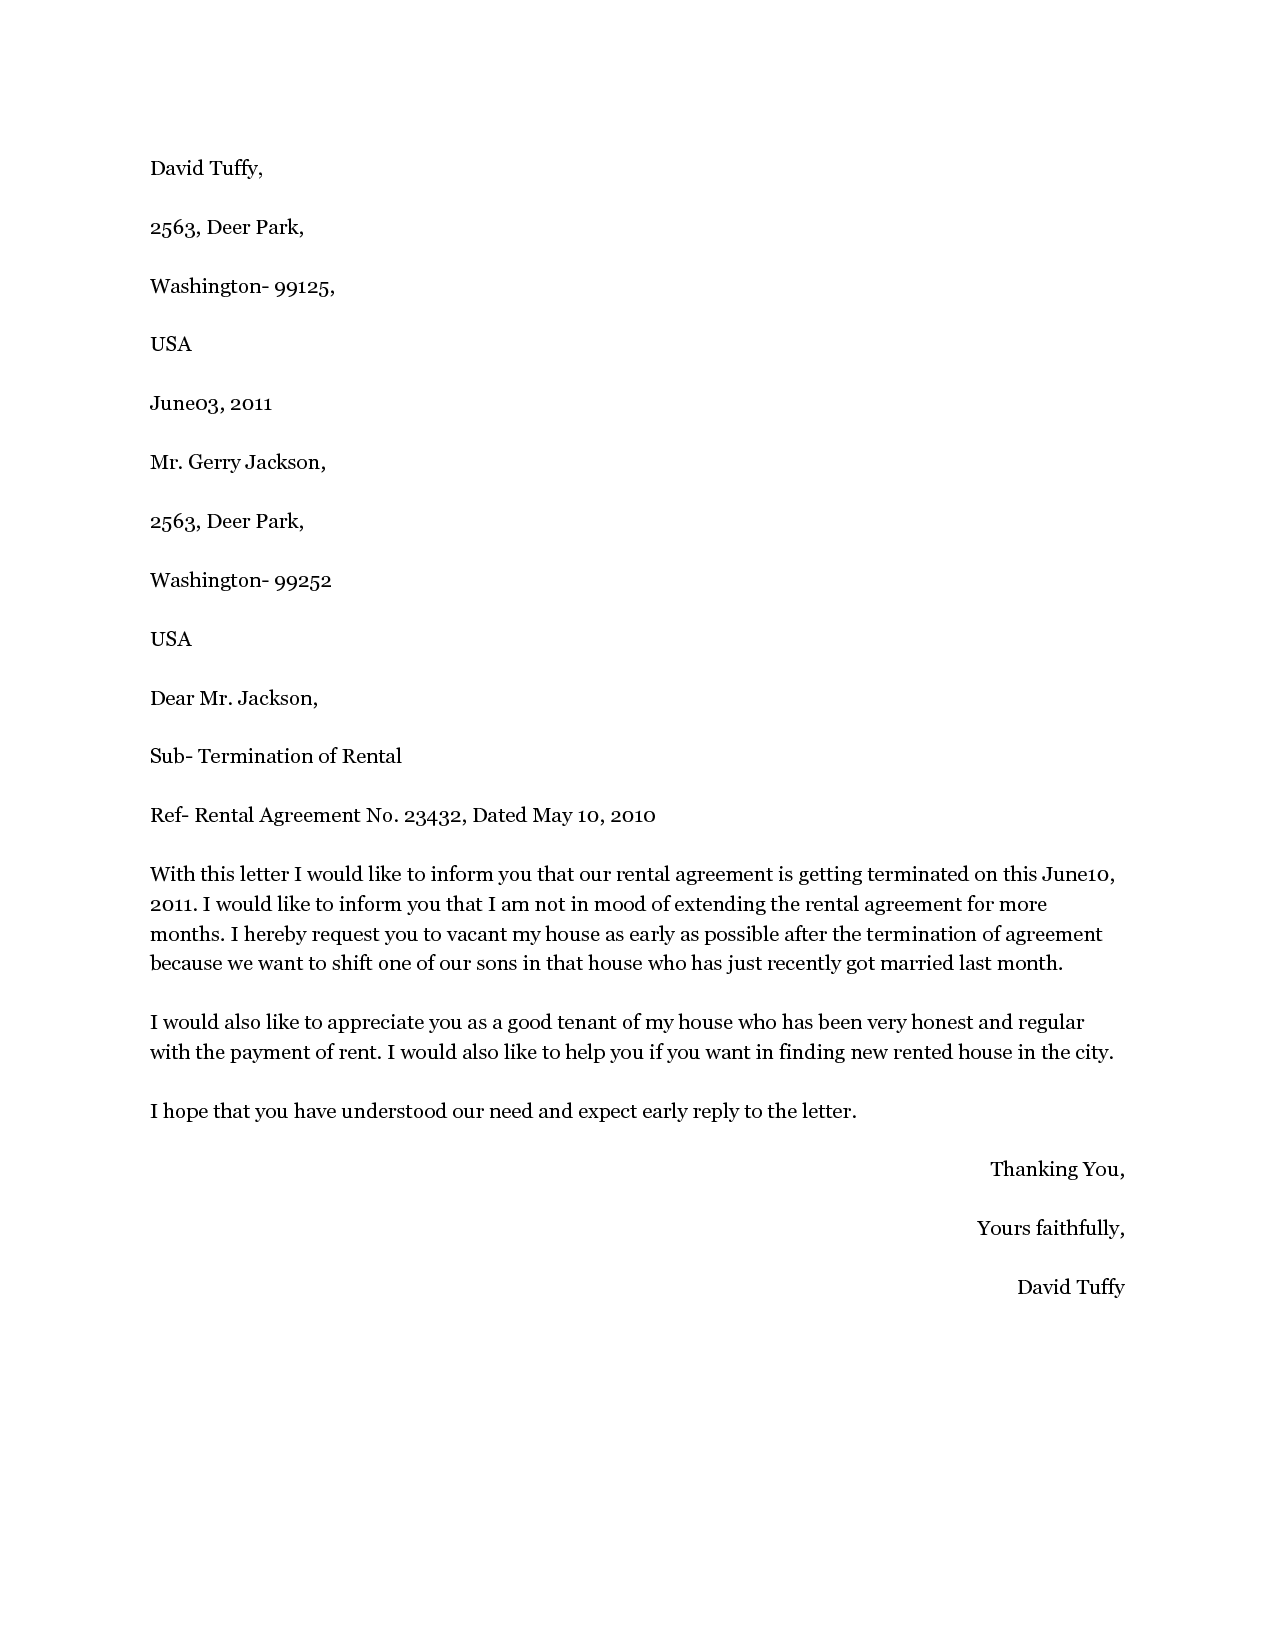 Termination of lease letter template textpoems sample letters termination of lease agreement cover latter spiritdancerdesigns Images